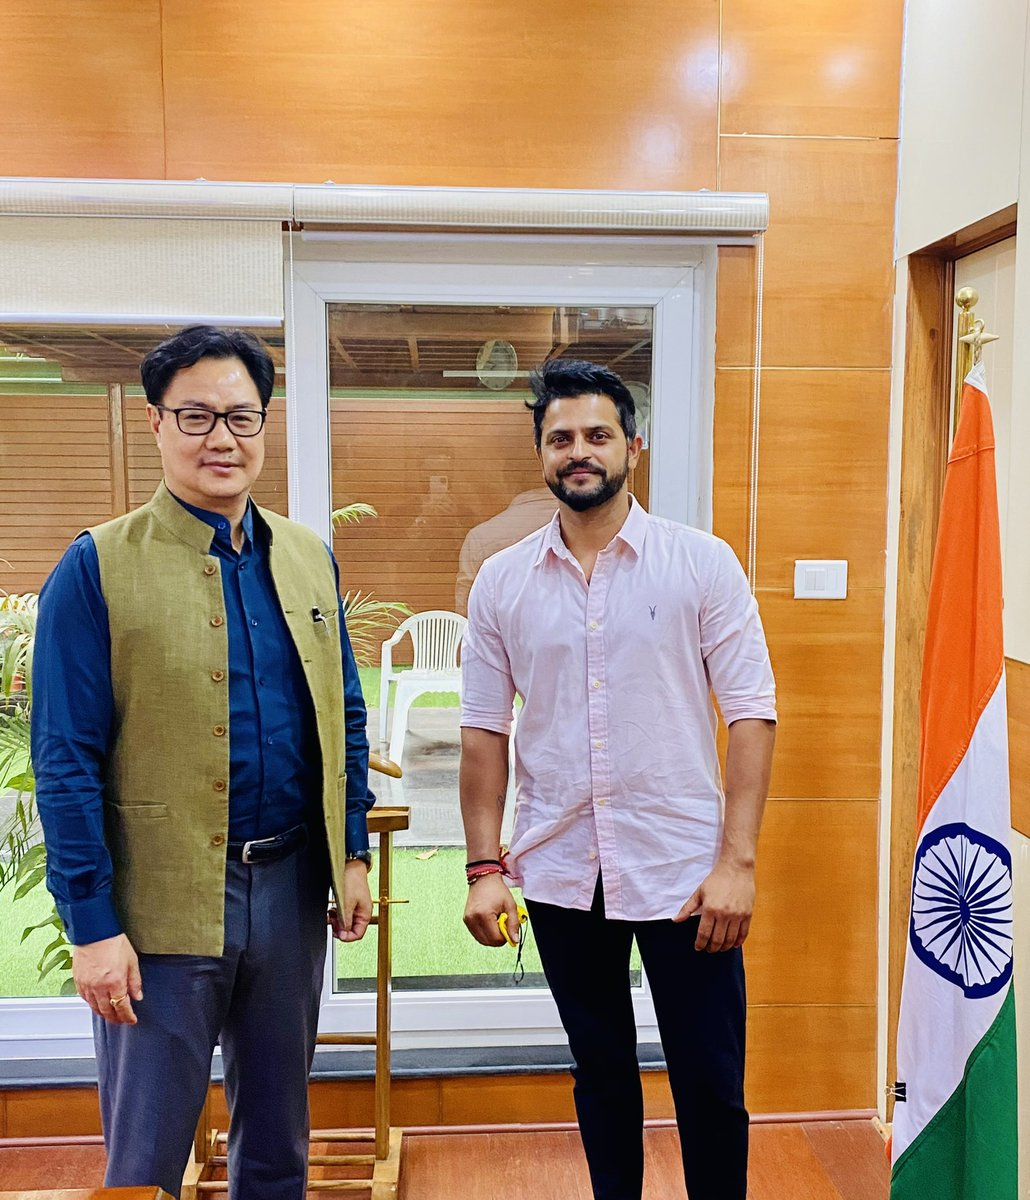 Wishing you a very happy birthday sir @KirenRijiju. May you be blessed with best of health always. Wishing you lots of success in all your endeavours & progressing vision of the country.